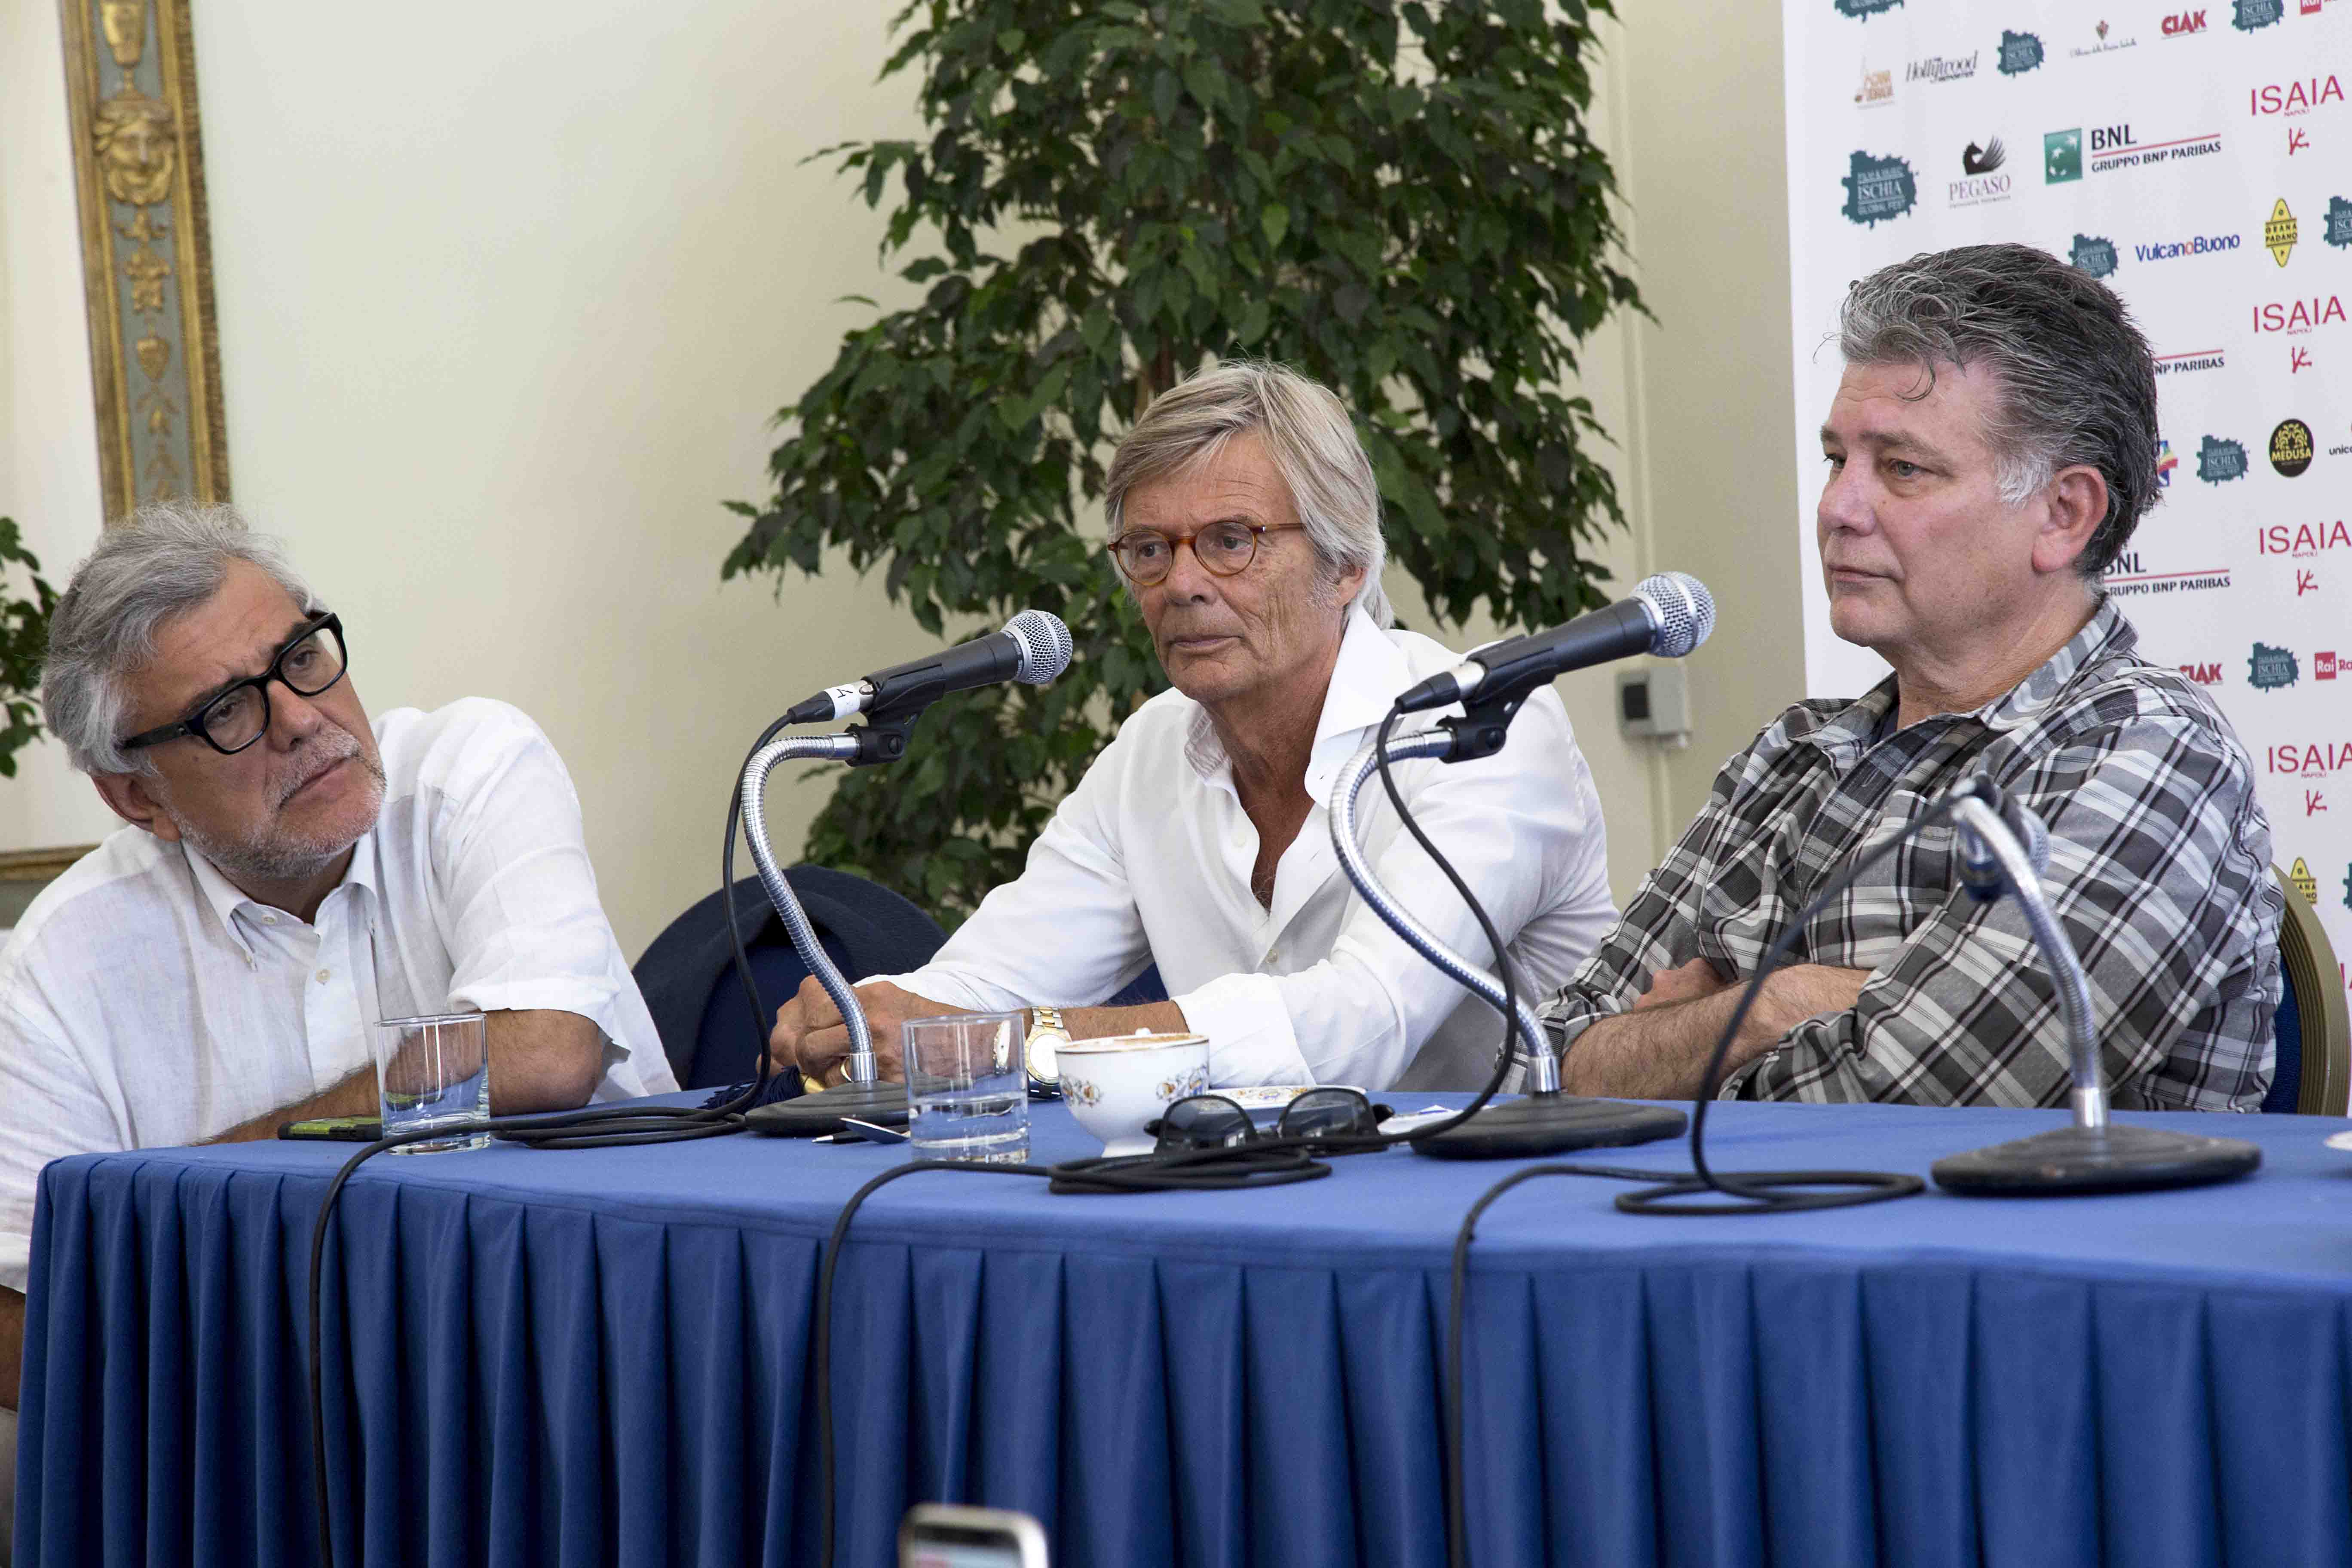 Ischia Global Fest - World Script Market - De Cataldo, Zaillian e August  - conferenza stampa del 17 Luglio